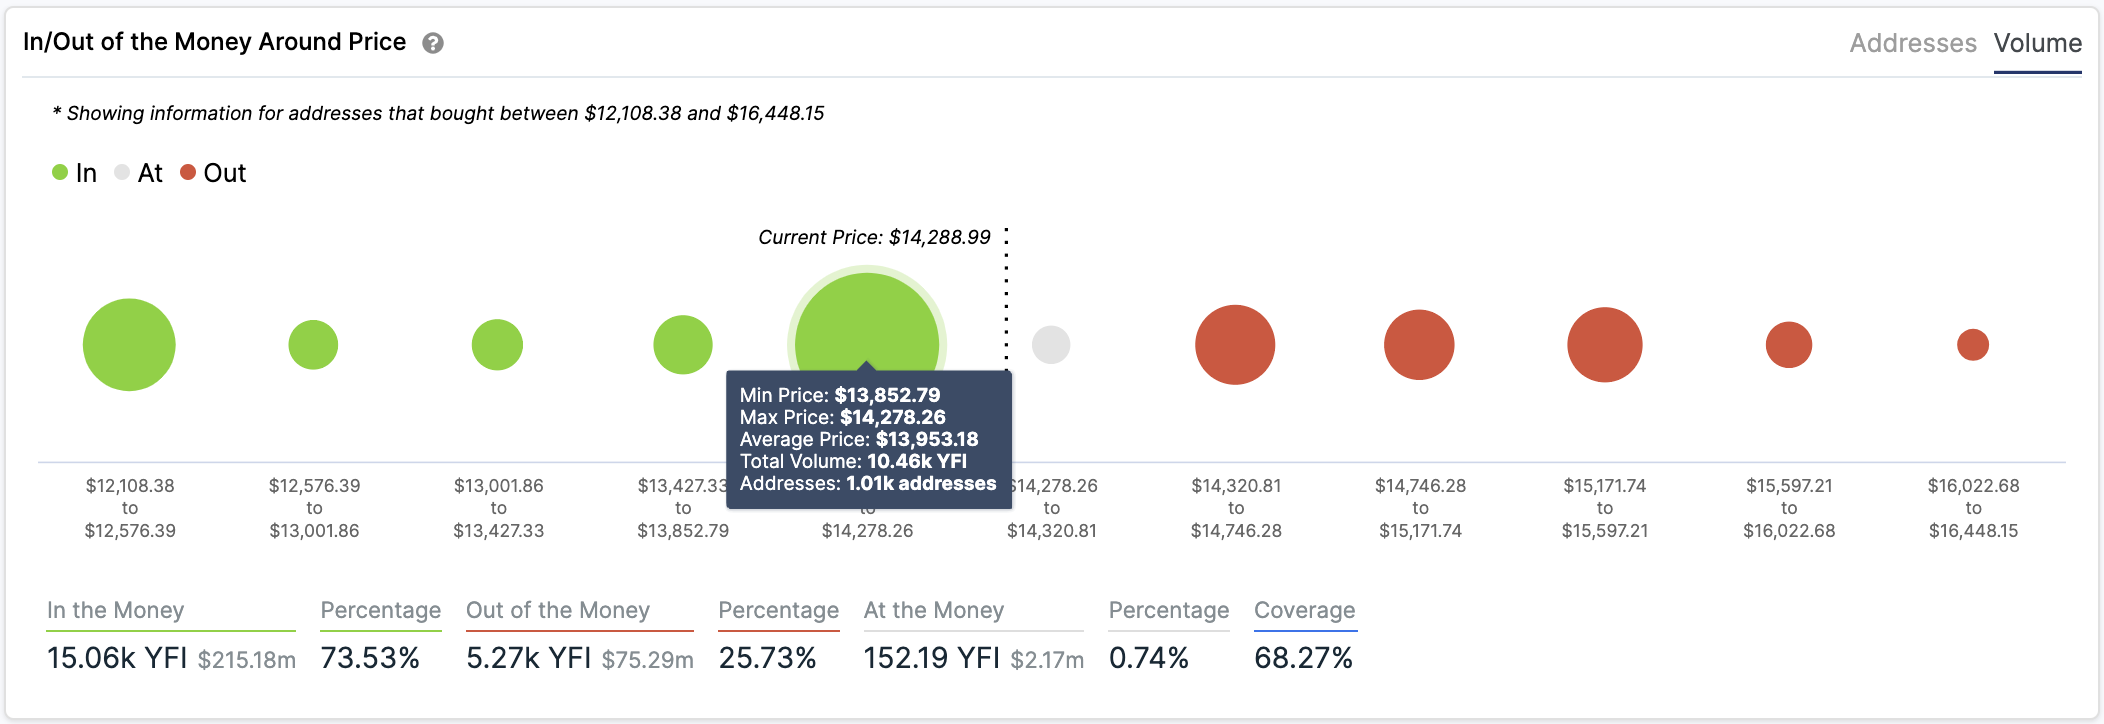 Yearn Finance In/Out of the Money Around Price by IntoTheBlock